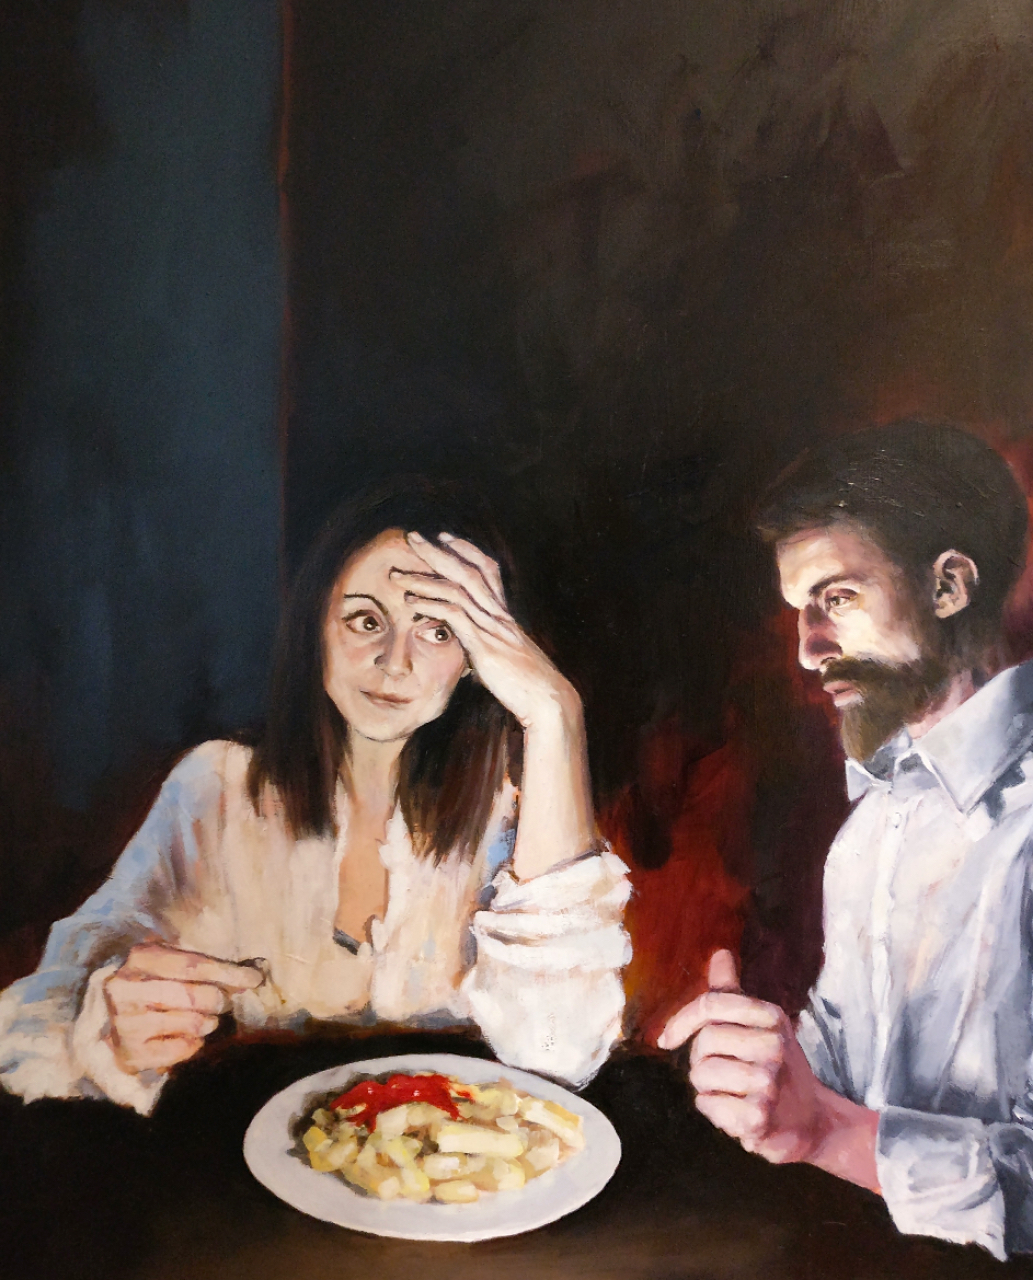 Man and Woman sitting over a plate of chips